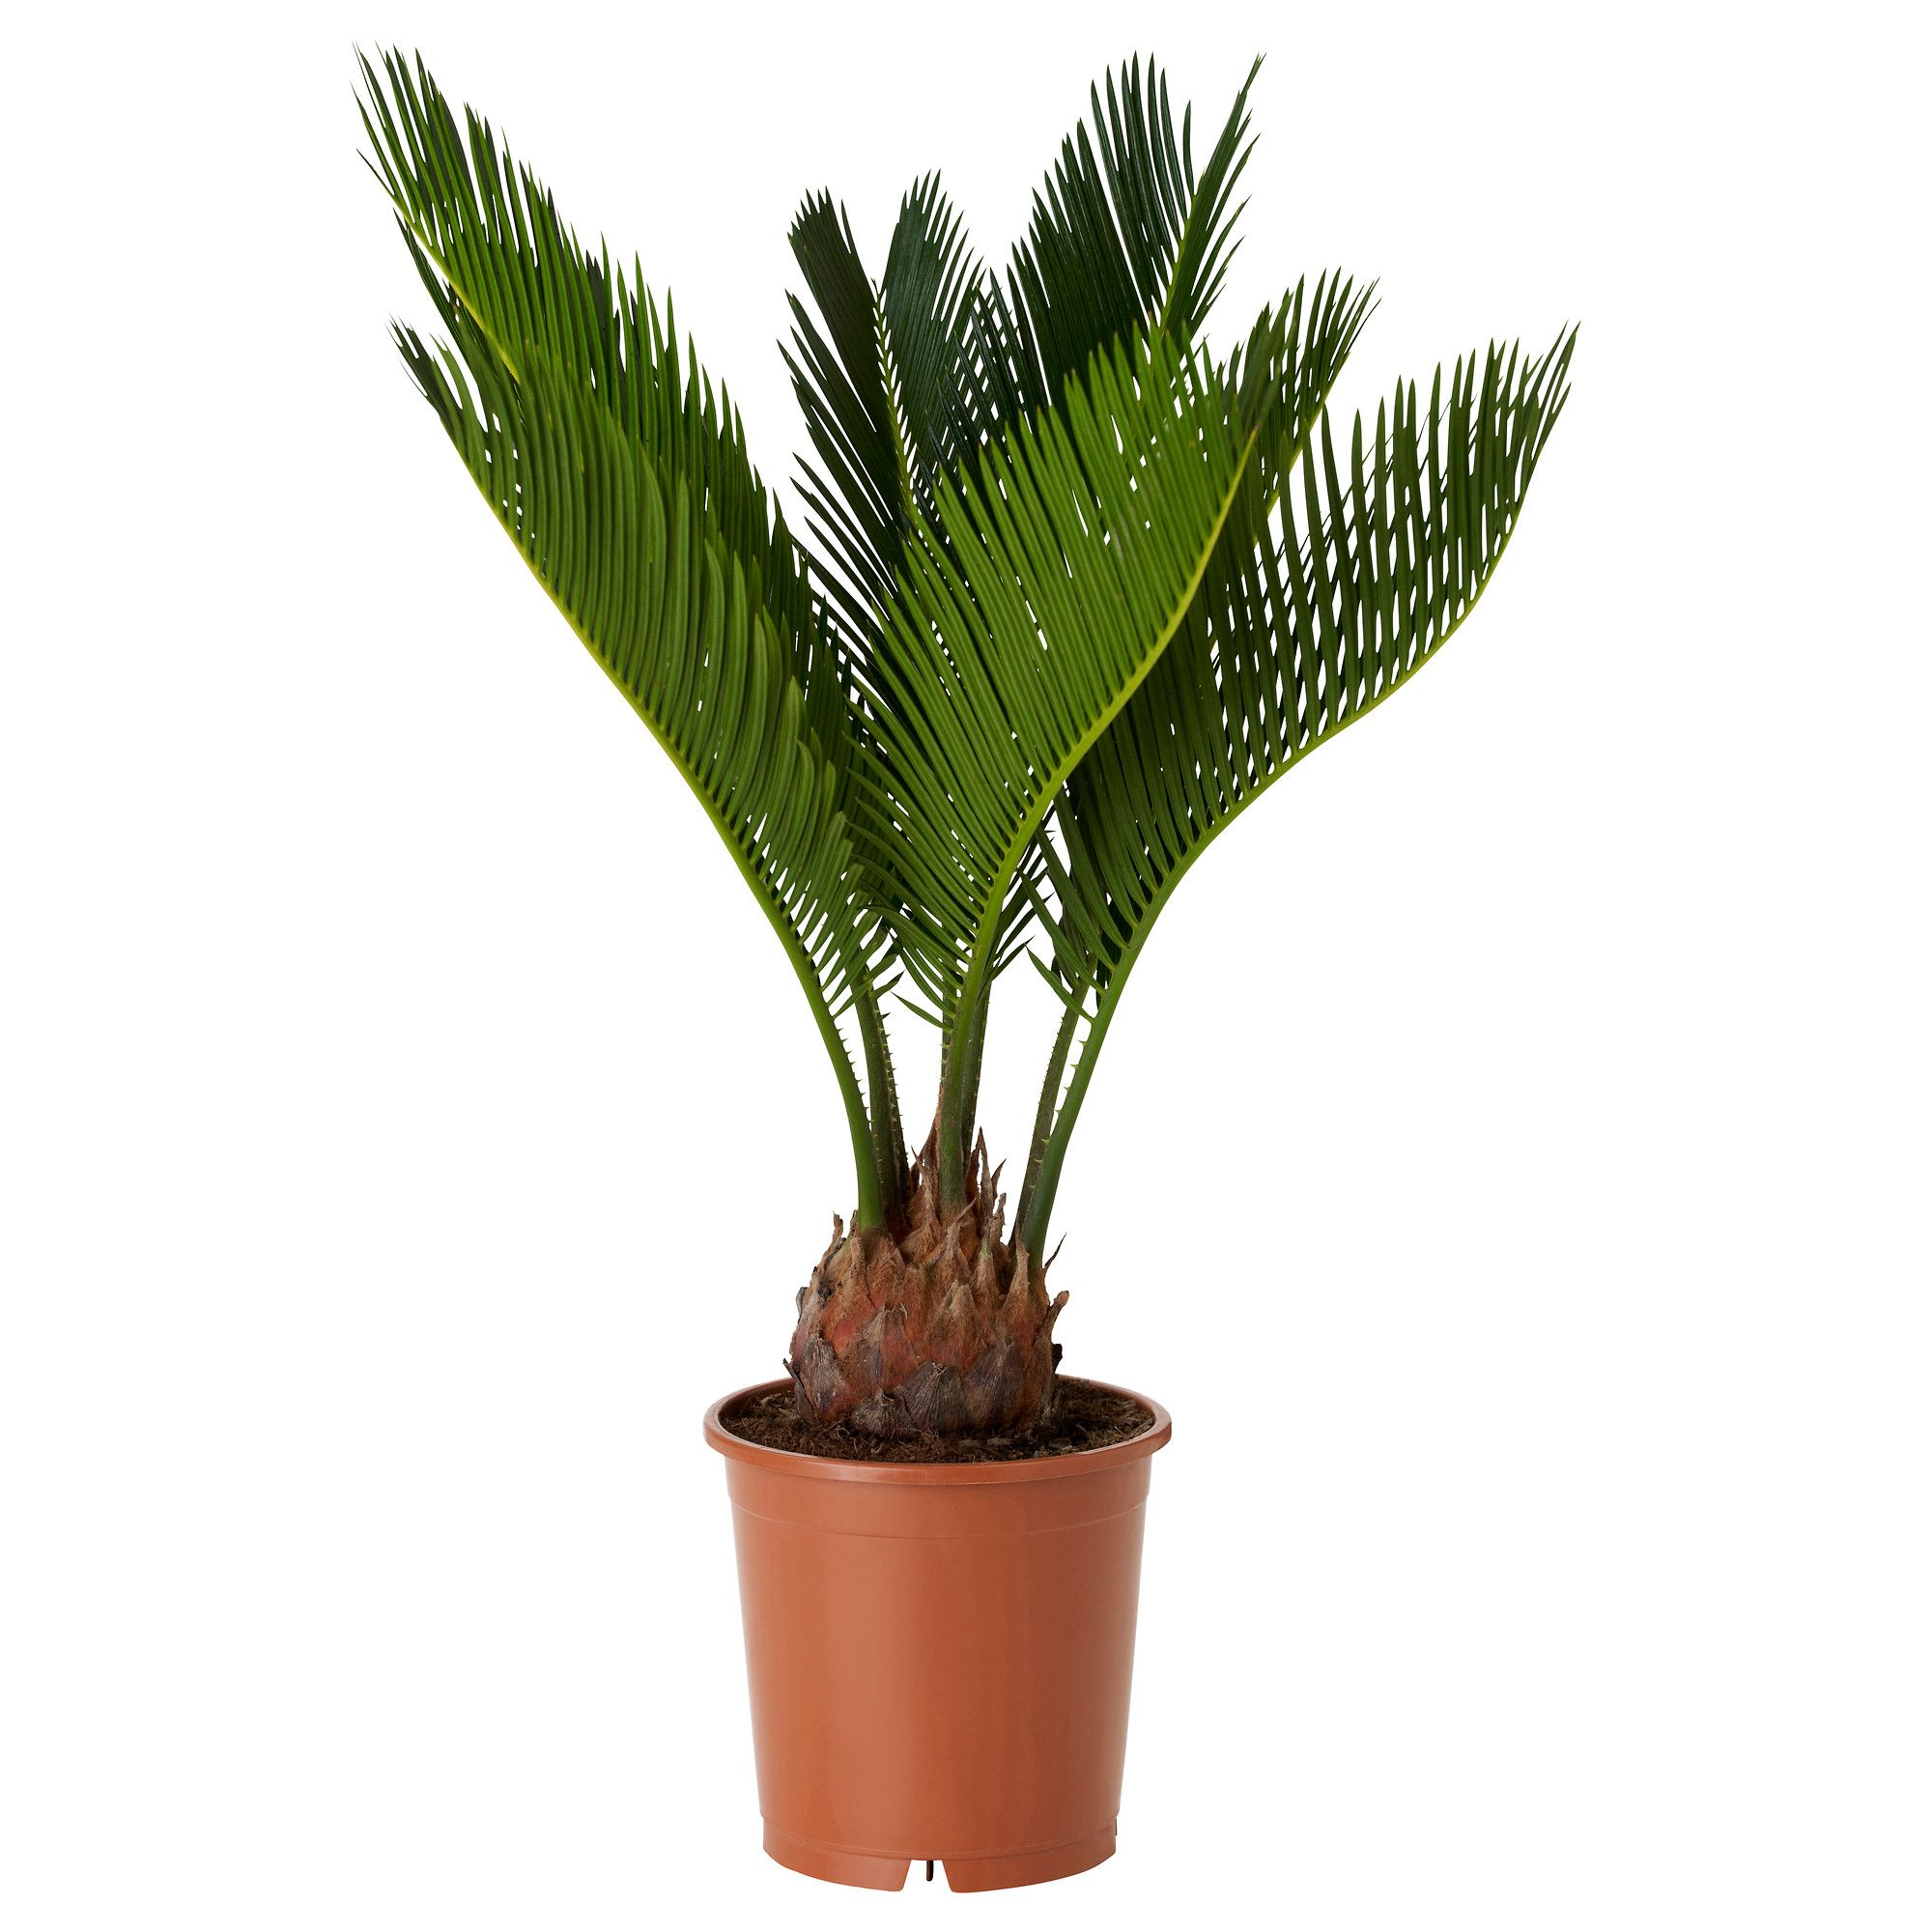 Ikea Palm Tree Cycas Revoluta Potted Plant Ikea 7 50 Home Decor Ikea